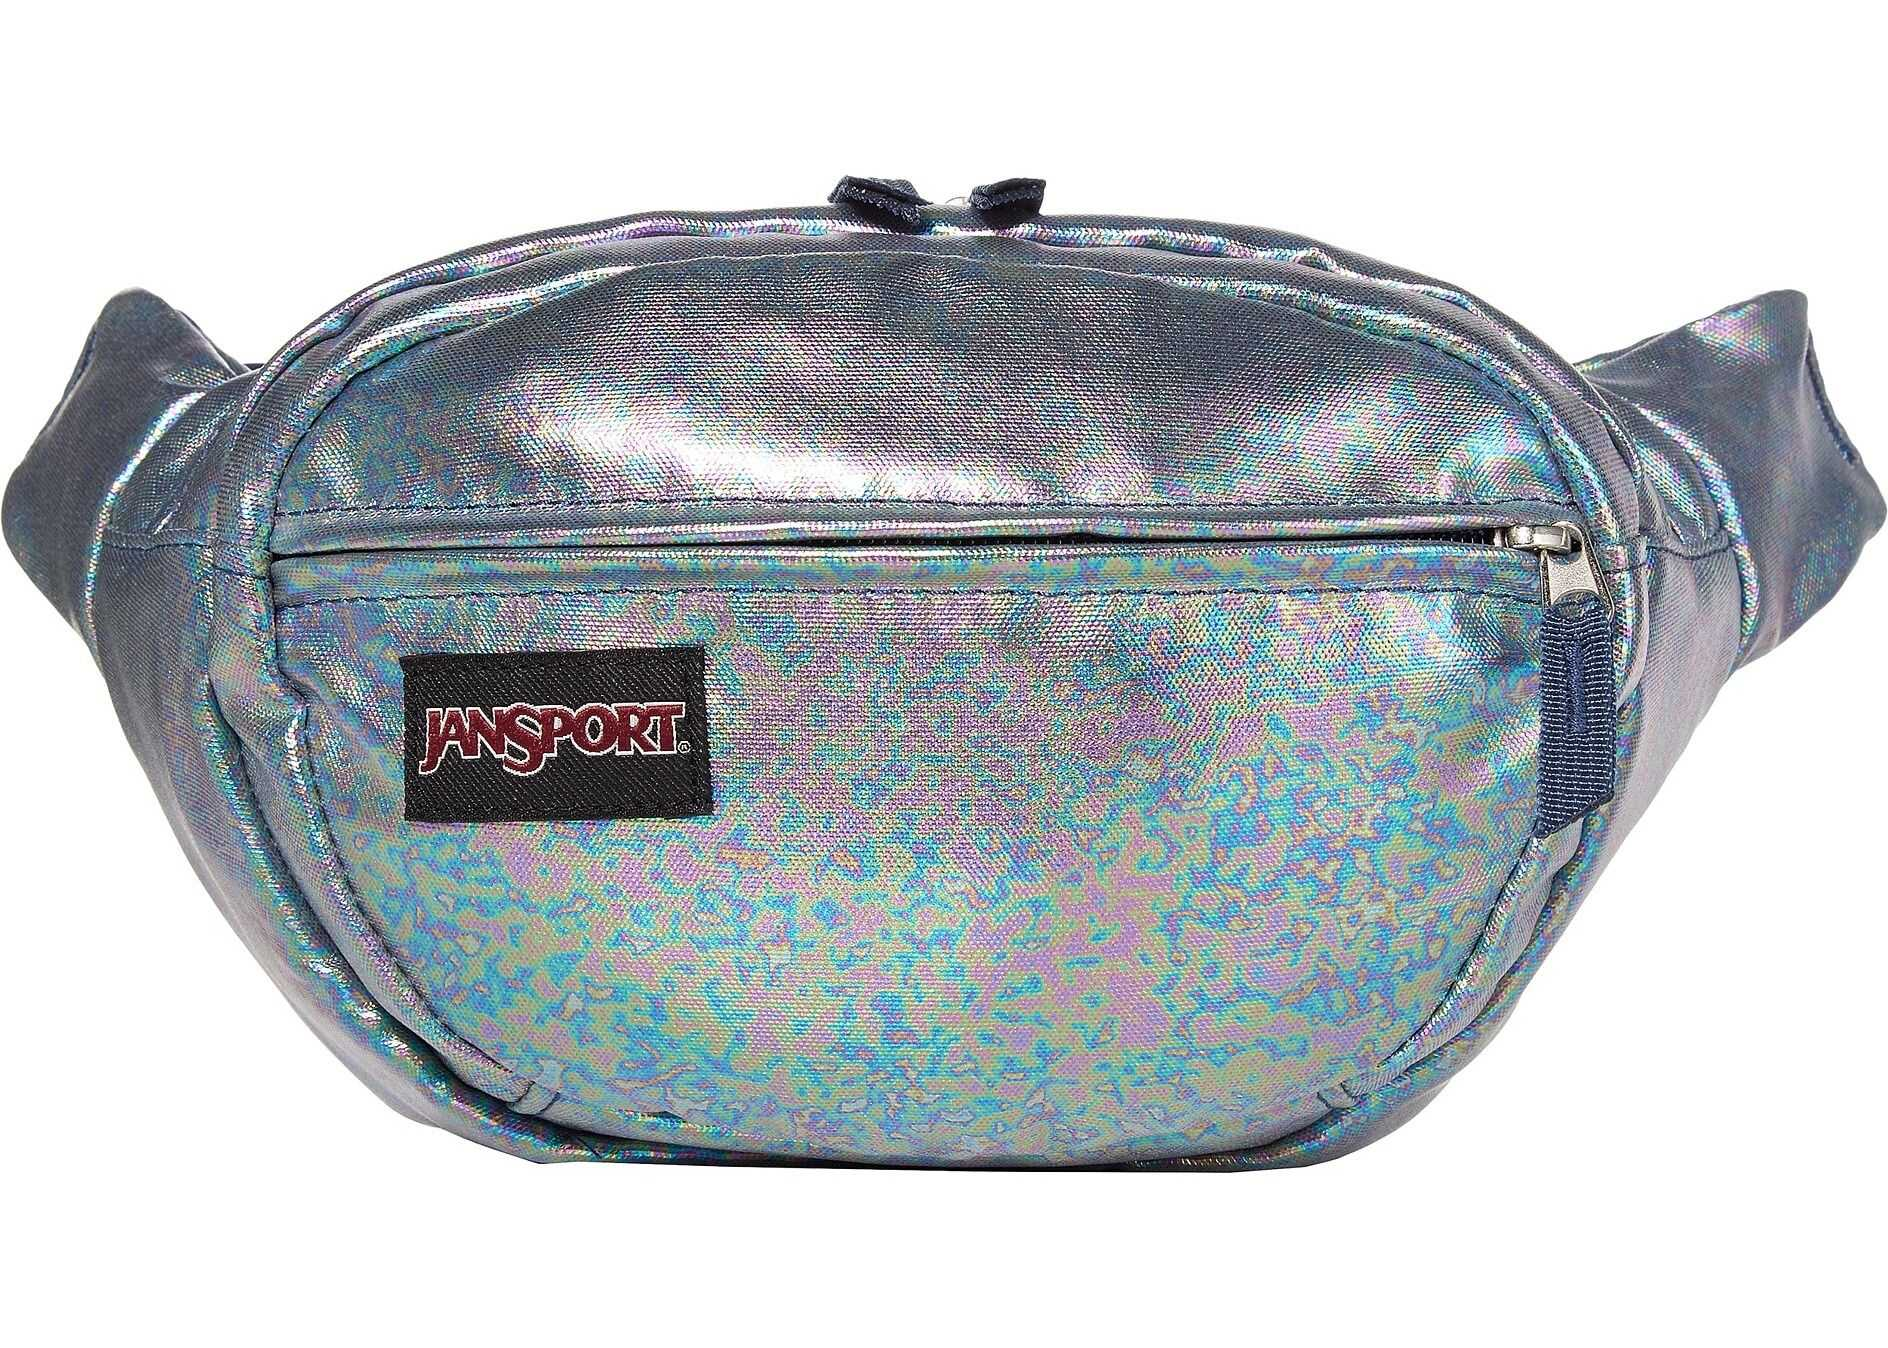 JanSport Fifth Ave FX Mermaid Pearlized Shine